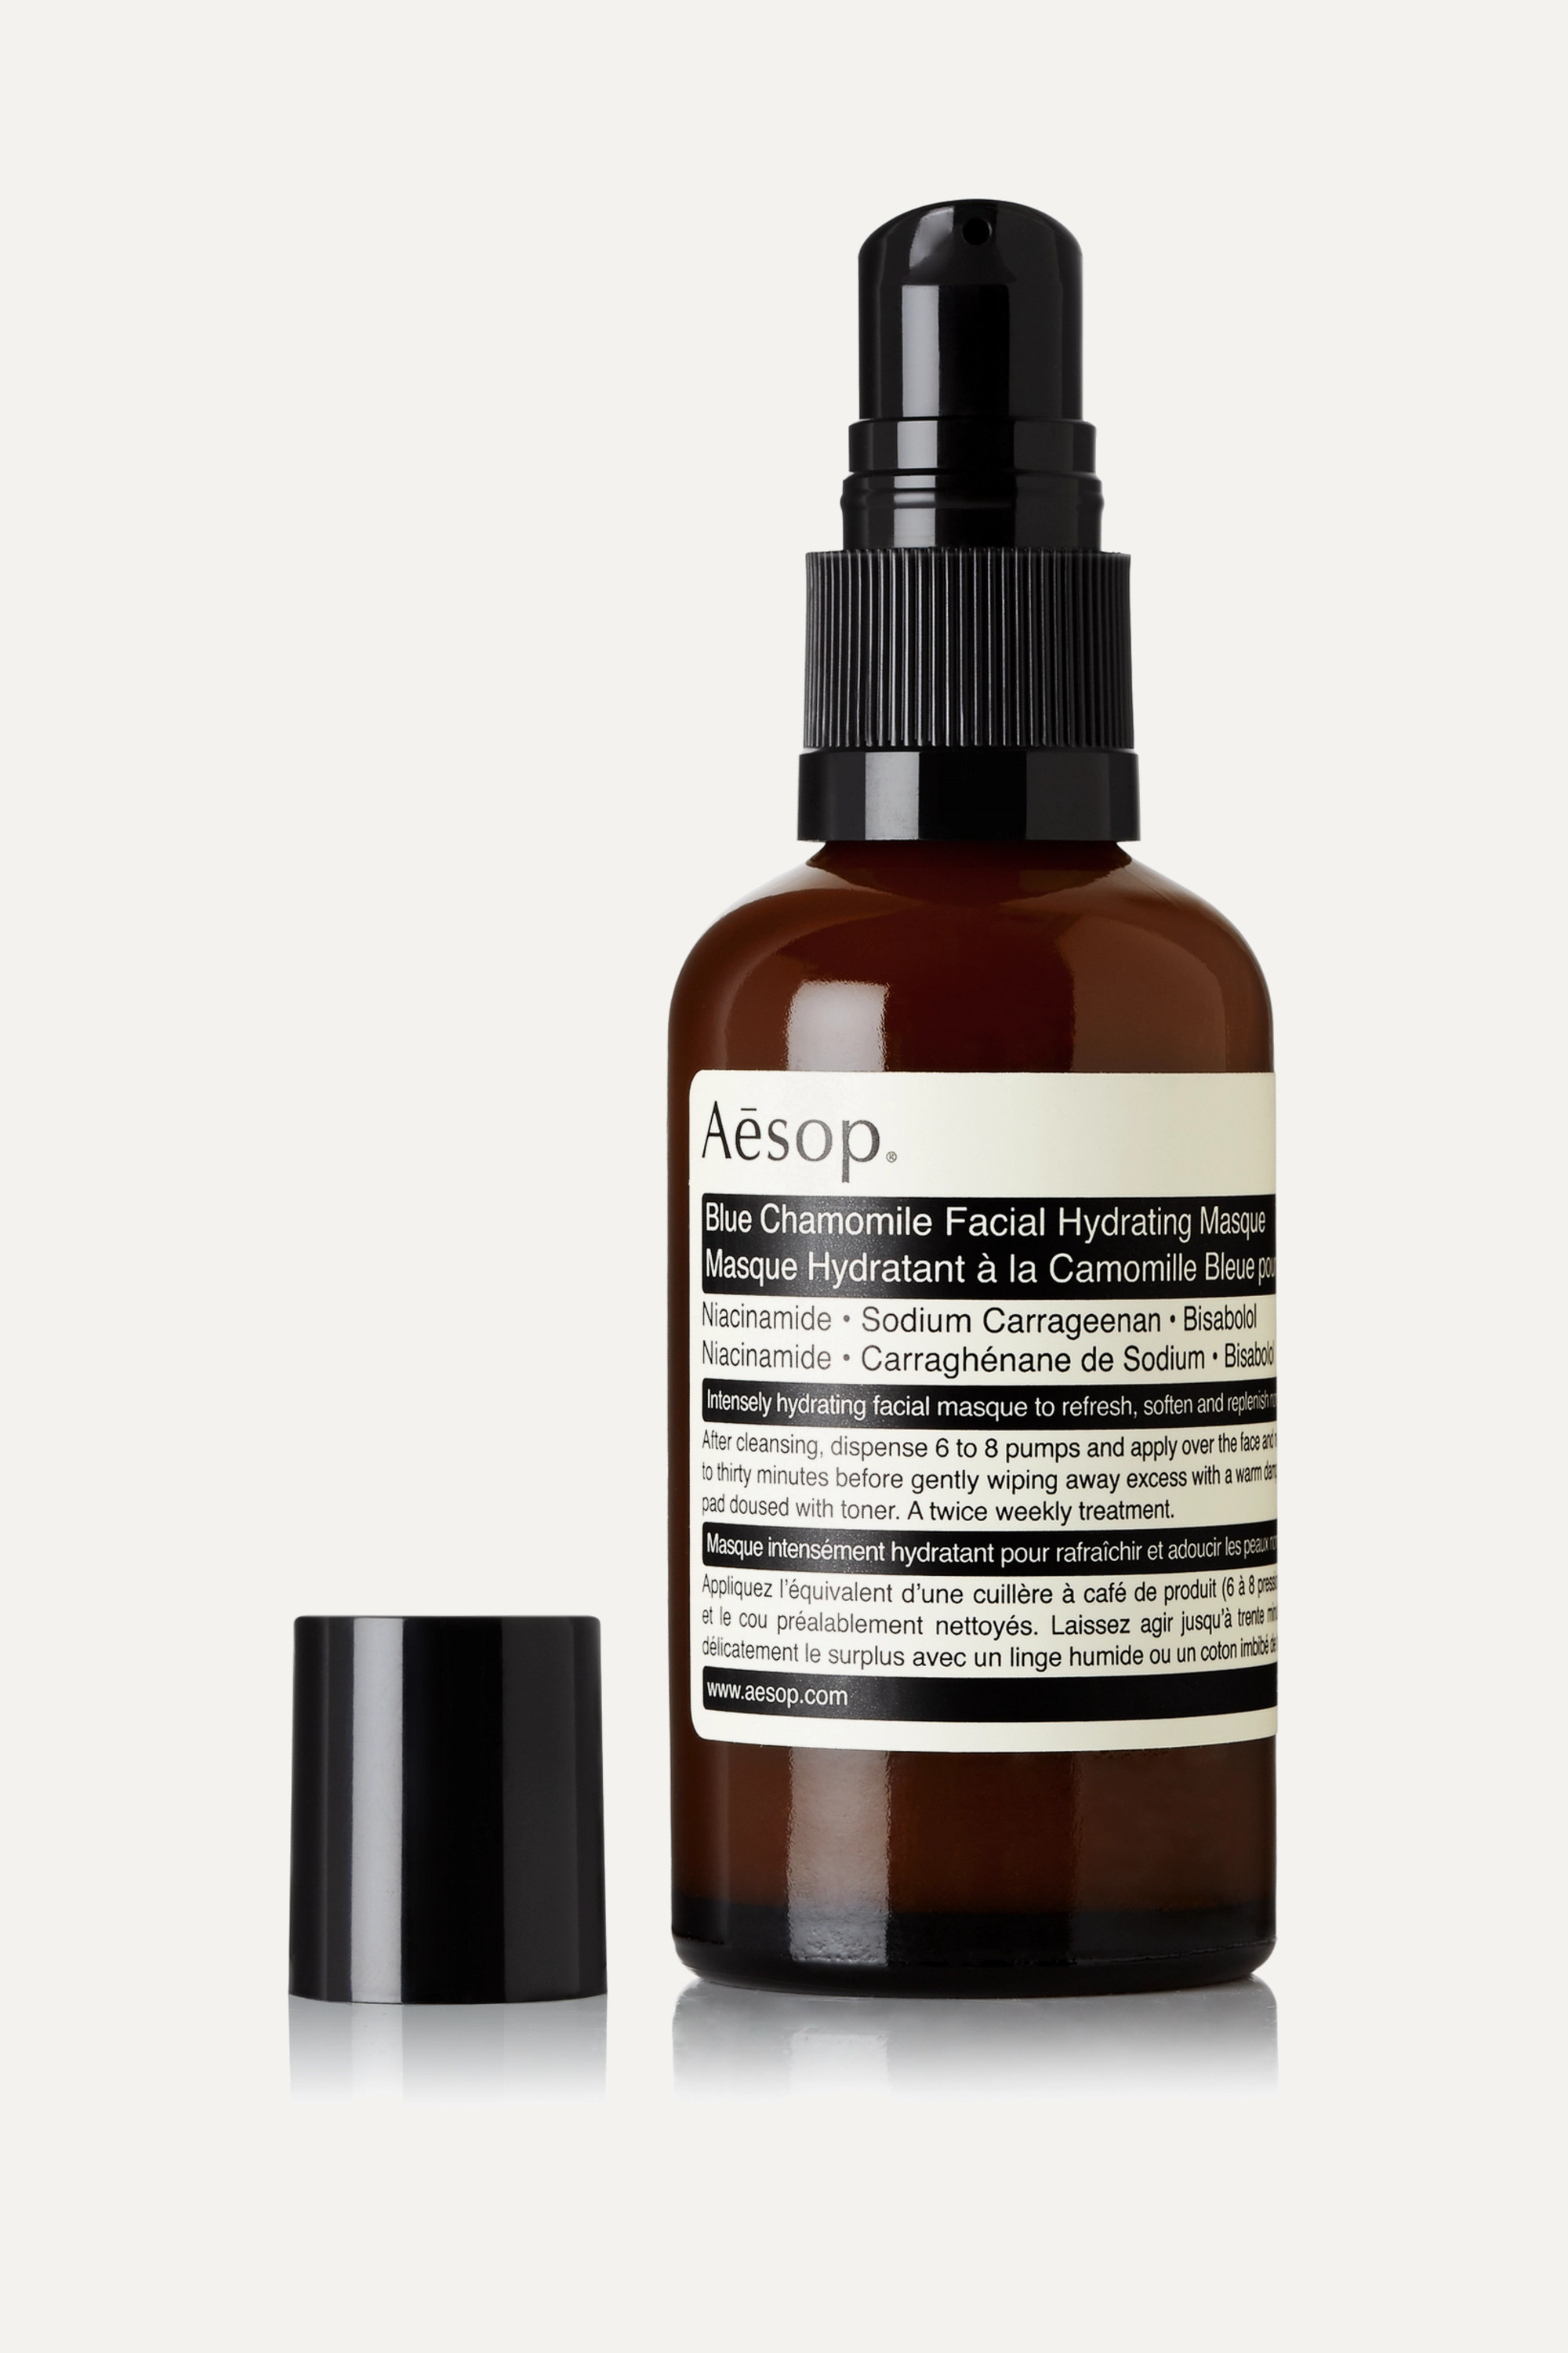 Aesop Blue Chamomile Facial Hydrating Masque, 60ml